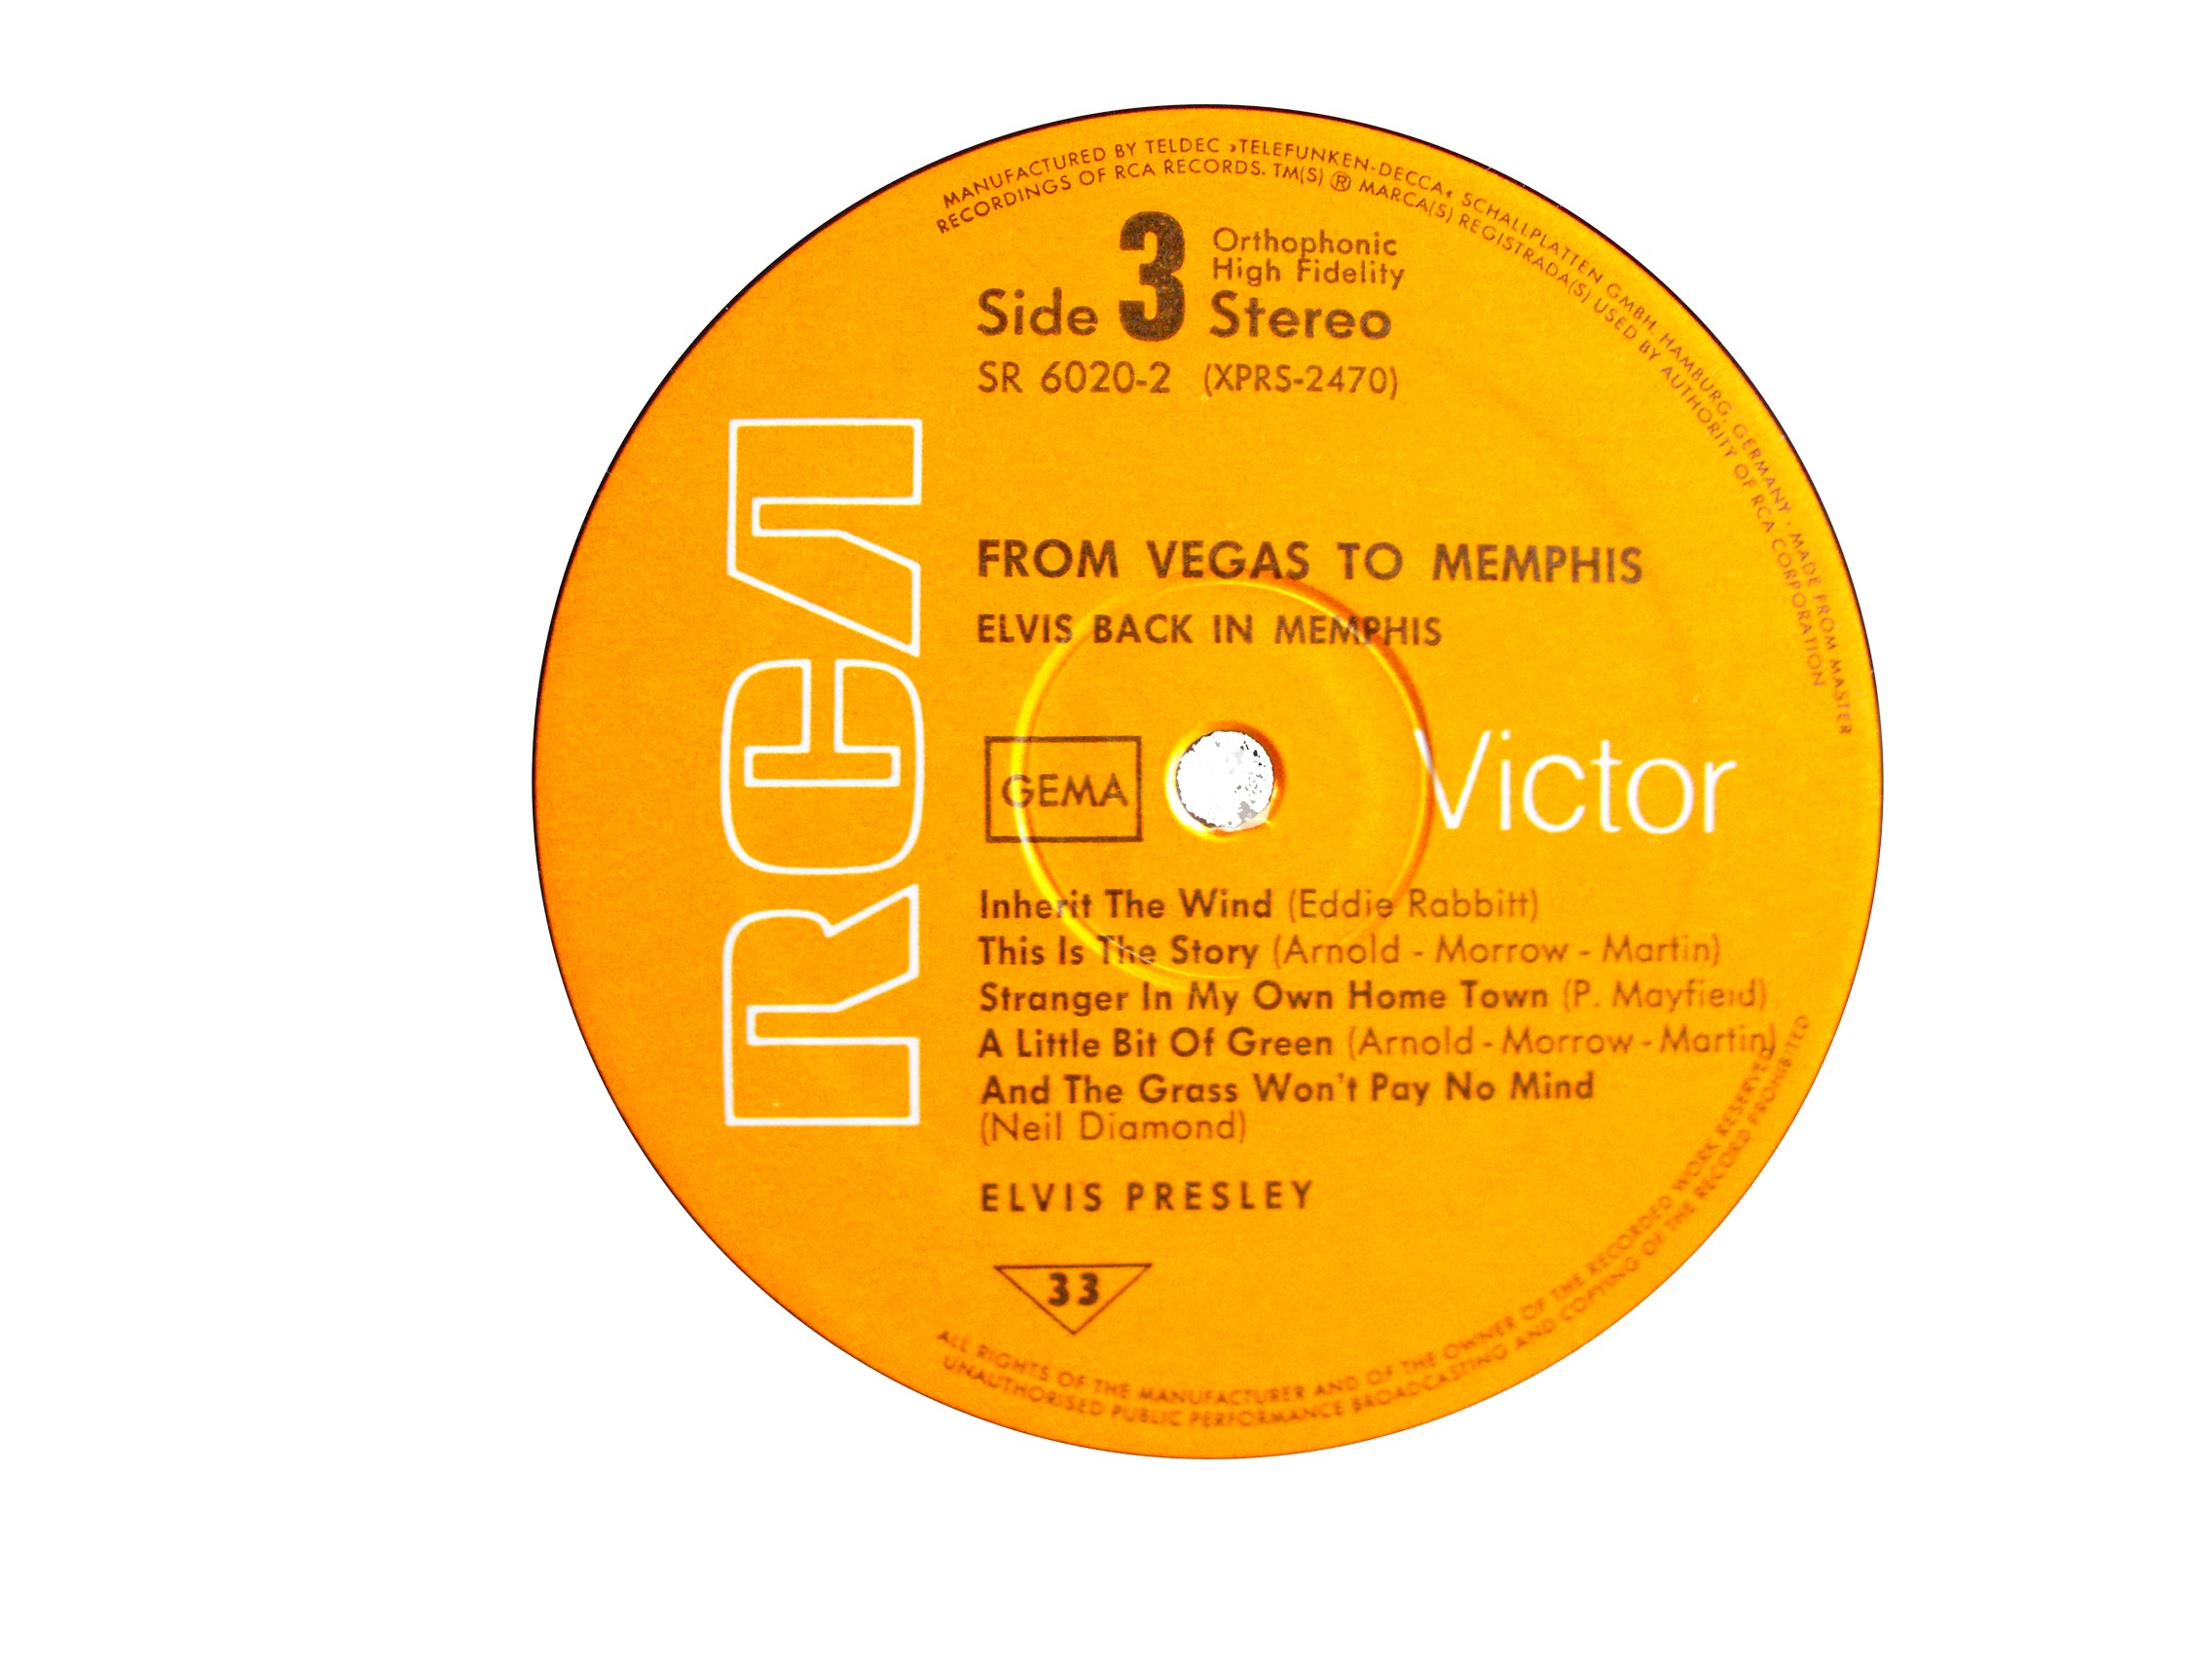 FROM MEMPHIS TO VEGAS / FROM VEGAS TO MEMPHIS Fmtv70label36uu8v